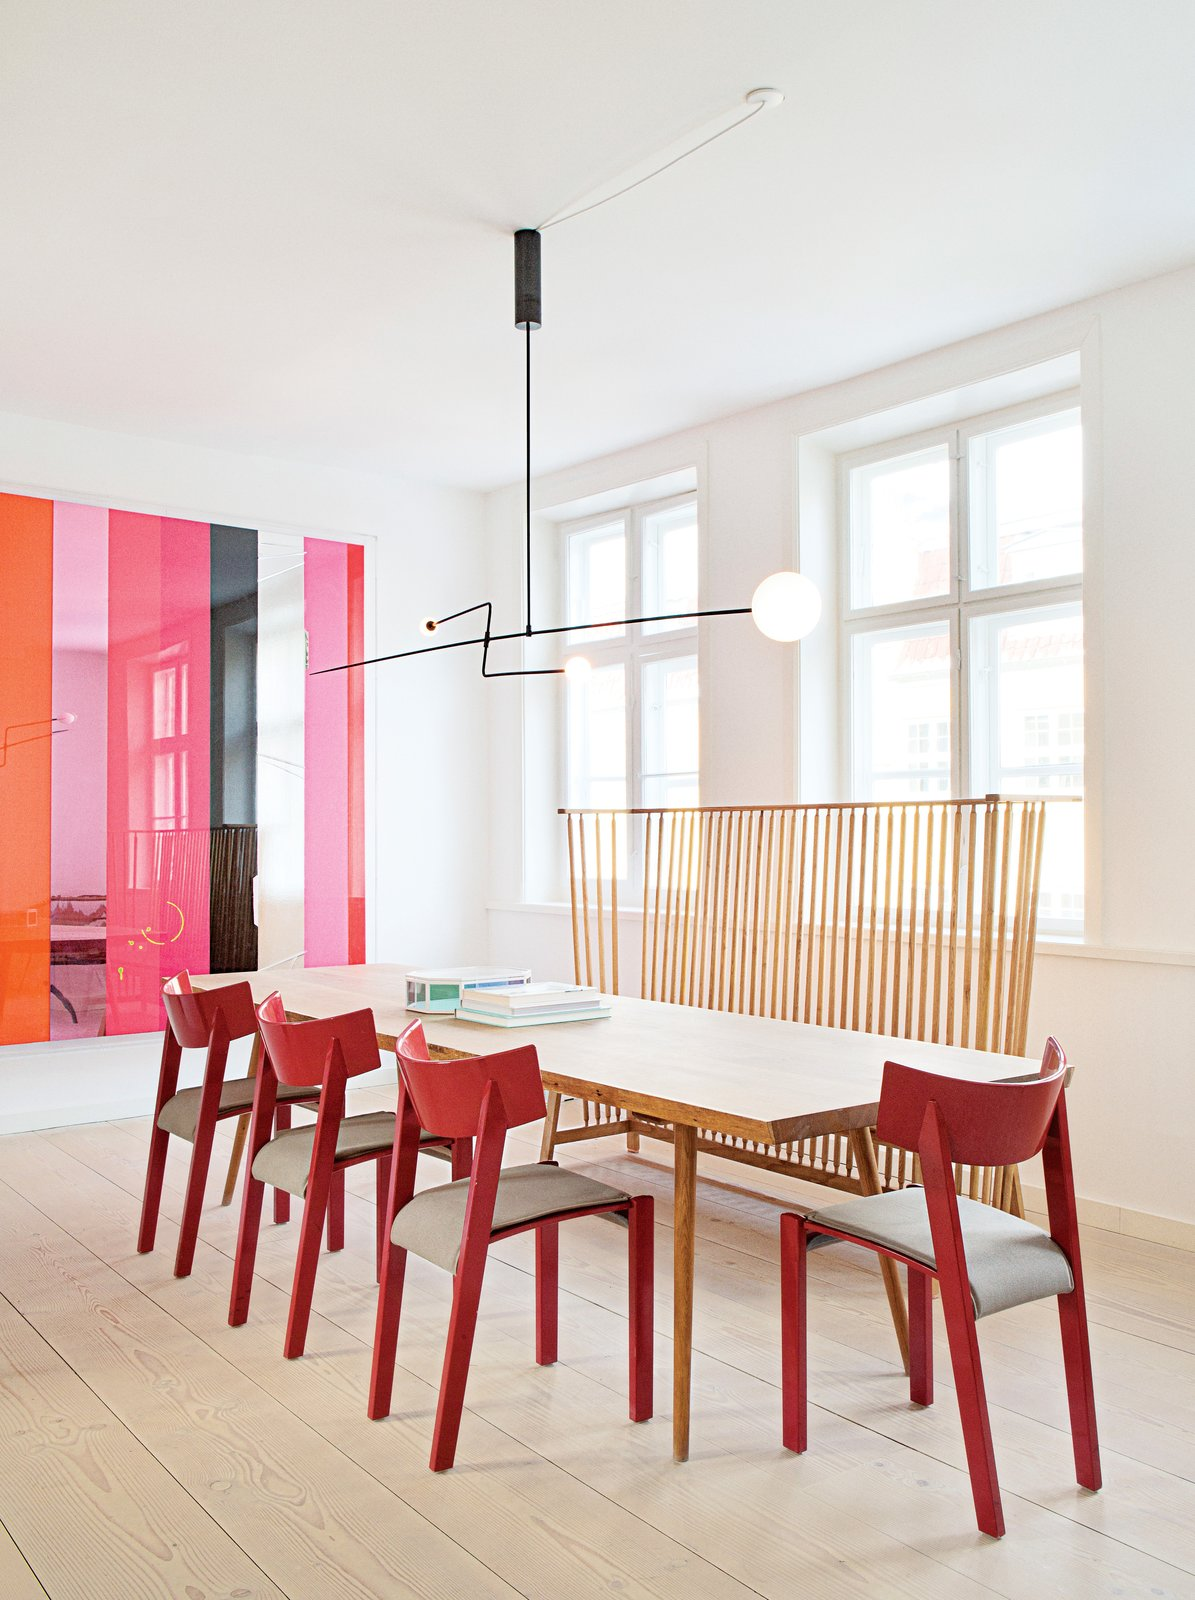 Dining Room, Table, Chair, Pendant Lighting, Ceiling Lighting, and Light Hardwood Floor In the dining area of the kitchen, a Mobile Chandelier 3 by Michael Anastassiades is suspended above a table from local cabinetmaker Københavns Møbelsnedkeri. Vintage red dining chairs by Ralf Lindberg mingle with an Ilse Crawford bench for De La Espada. Photos courtesy the Apartment.  On the Bench: 9 Great Seating Ideas For the Home by Aileen Kwun from A Curated Apartment Turned Showroom in Copenhagen